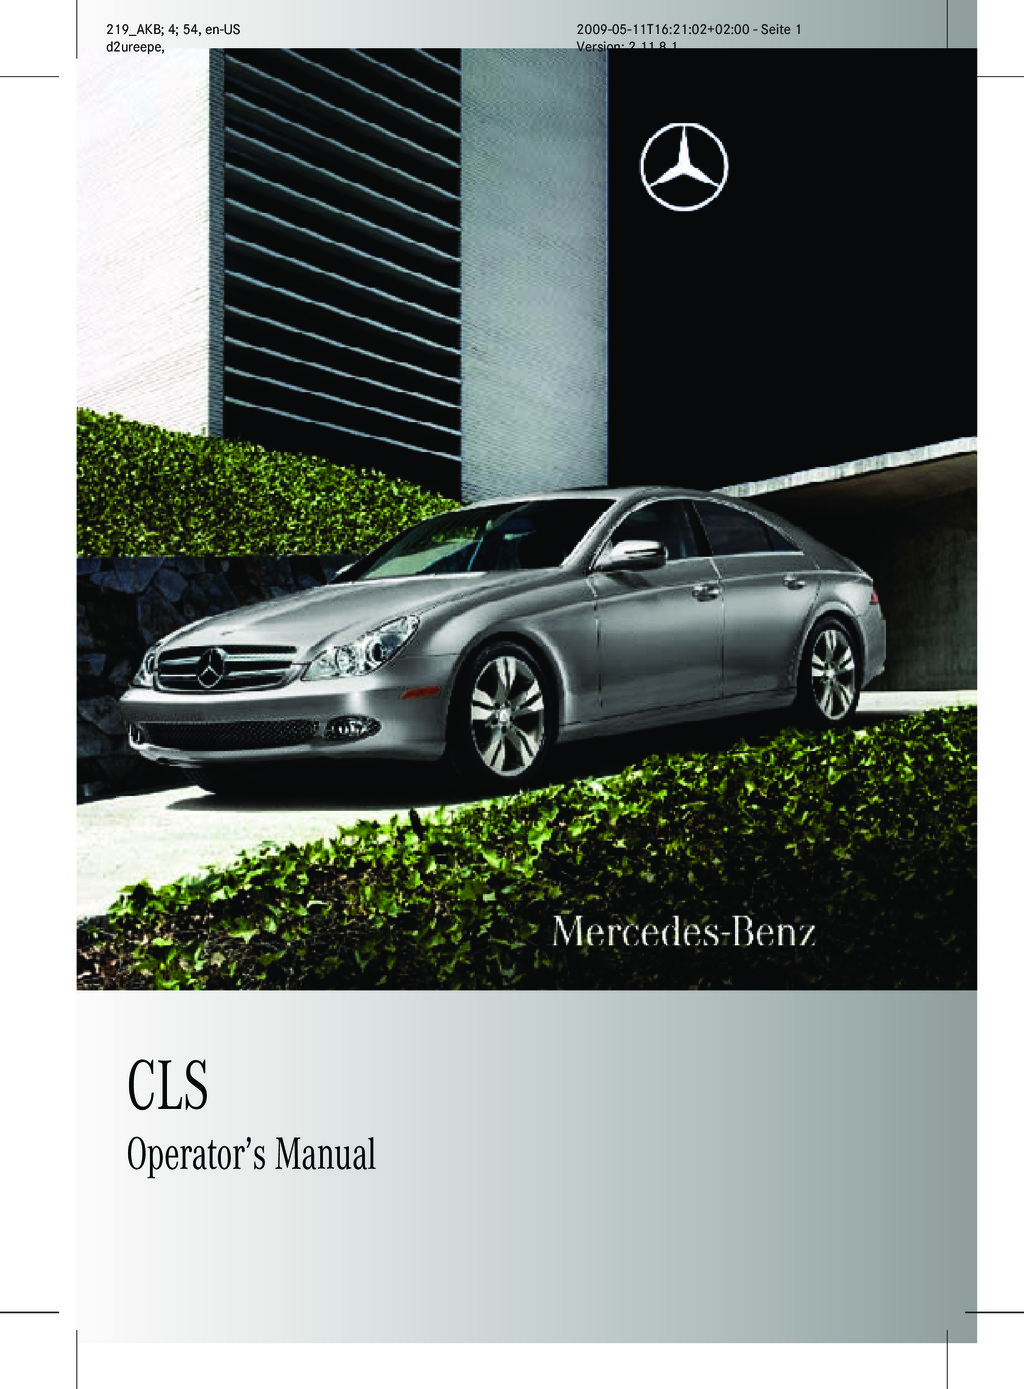 2010 Mercedes-Benz CLS owners manual